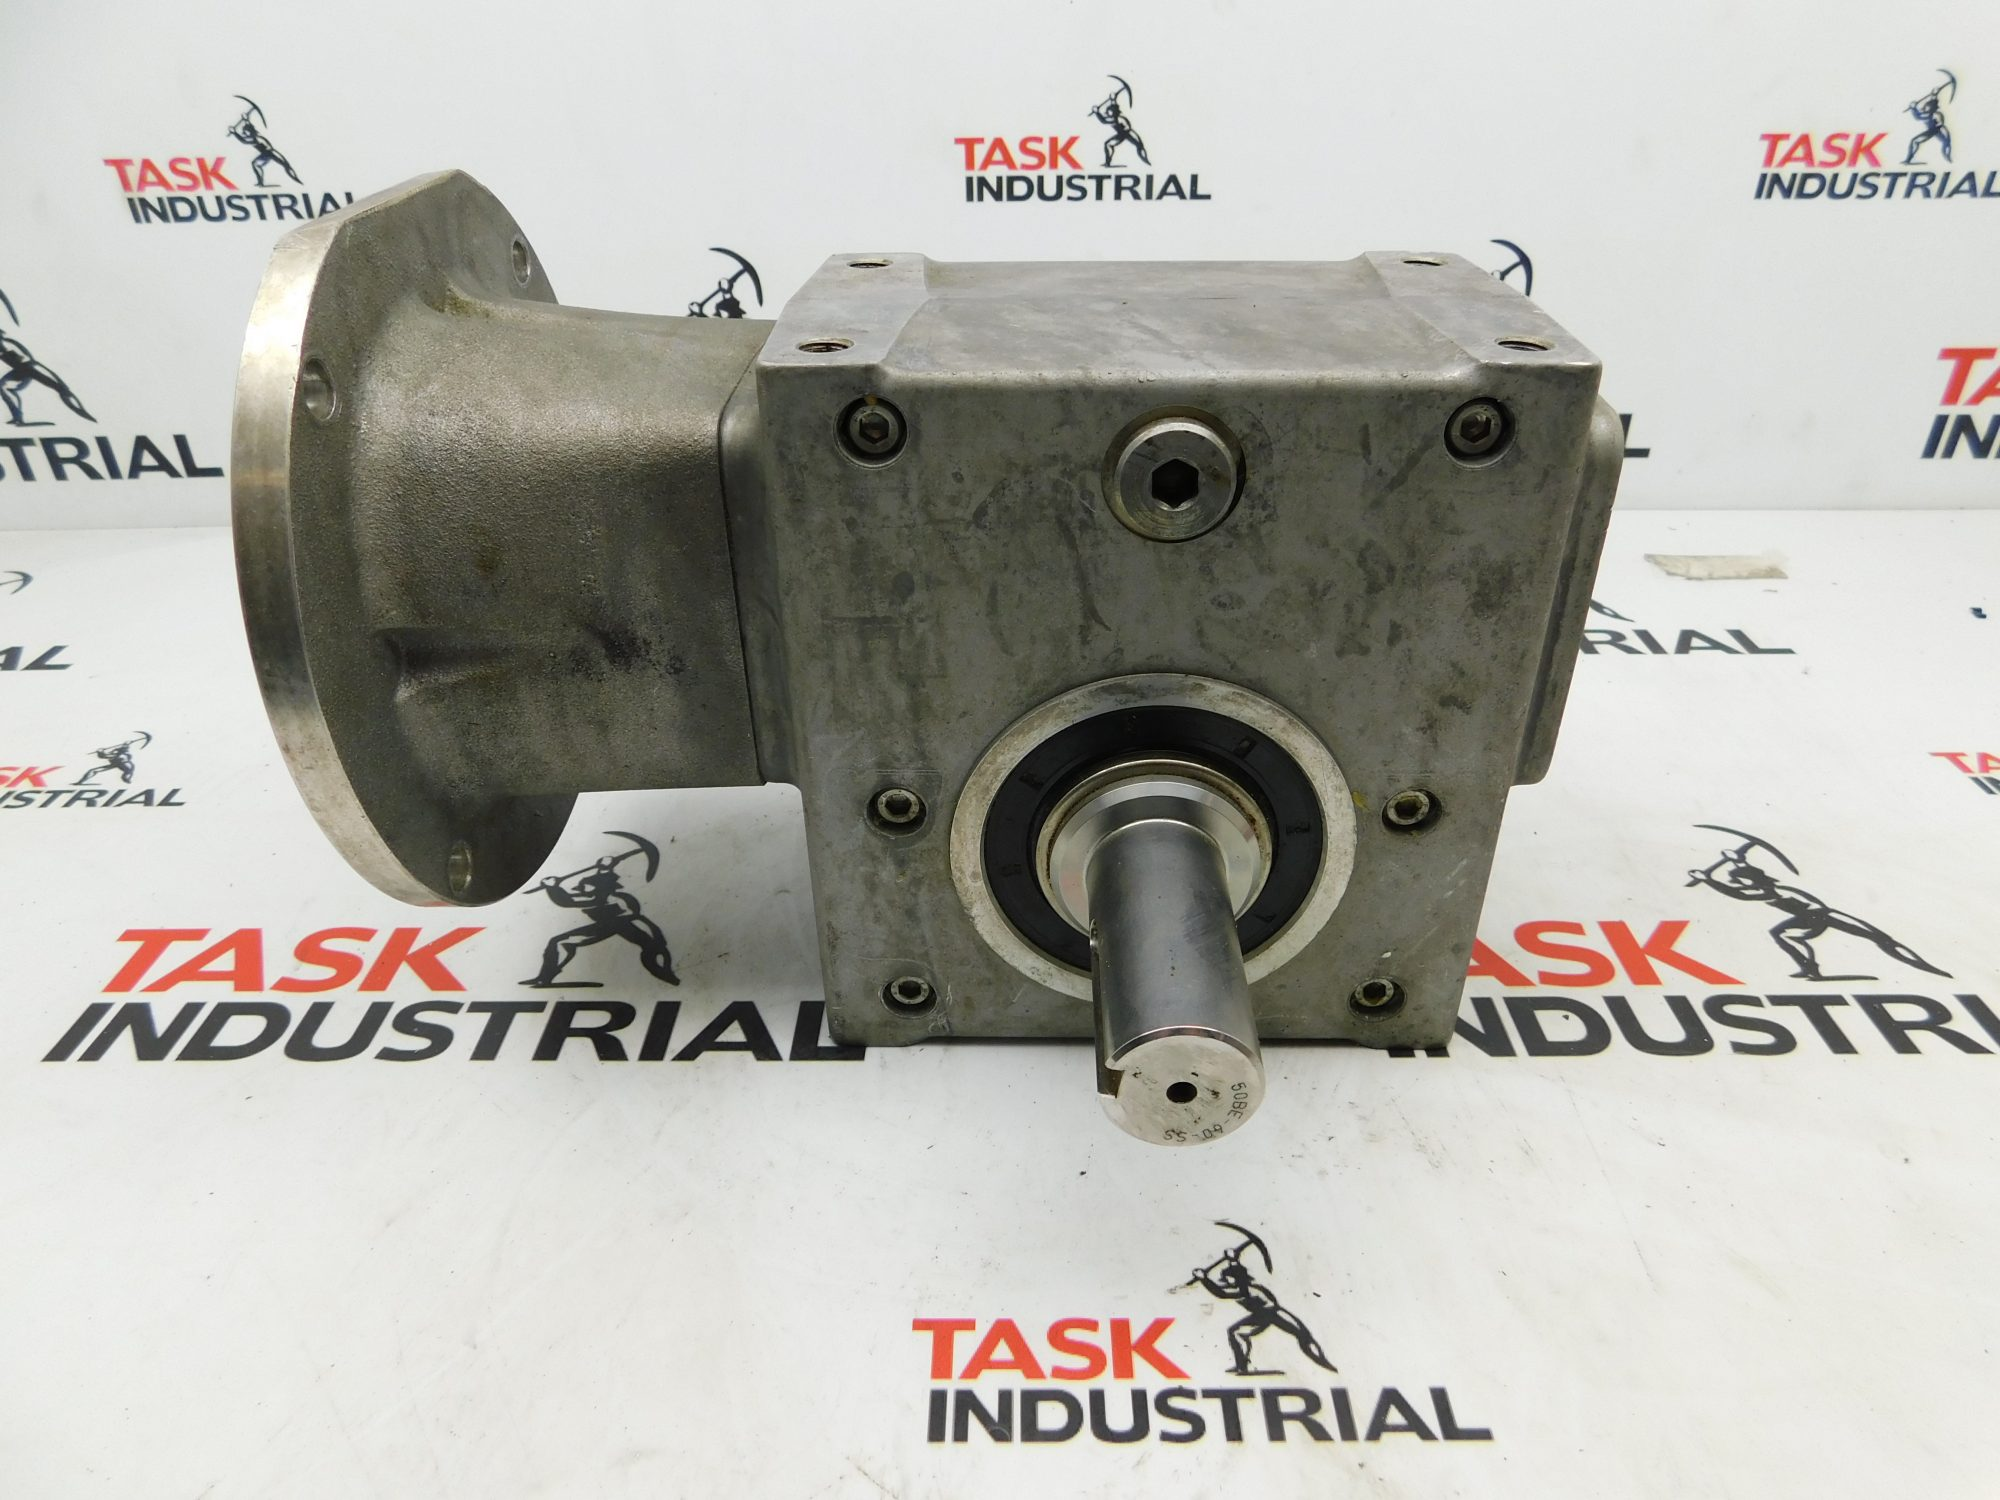 Cone Drive B0510-A104 Speed Reducer Ratio 30:1 1750RPM